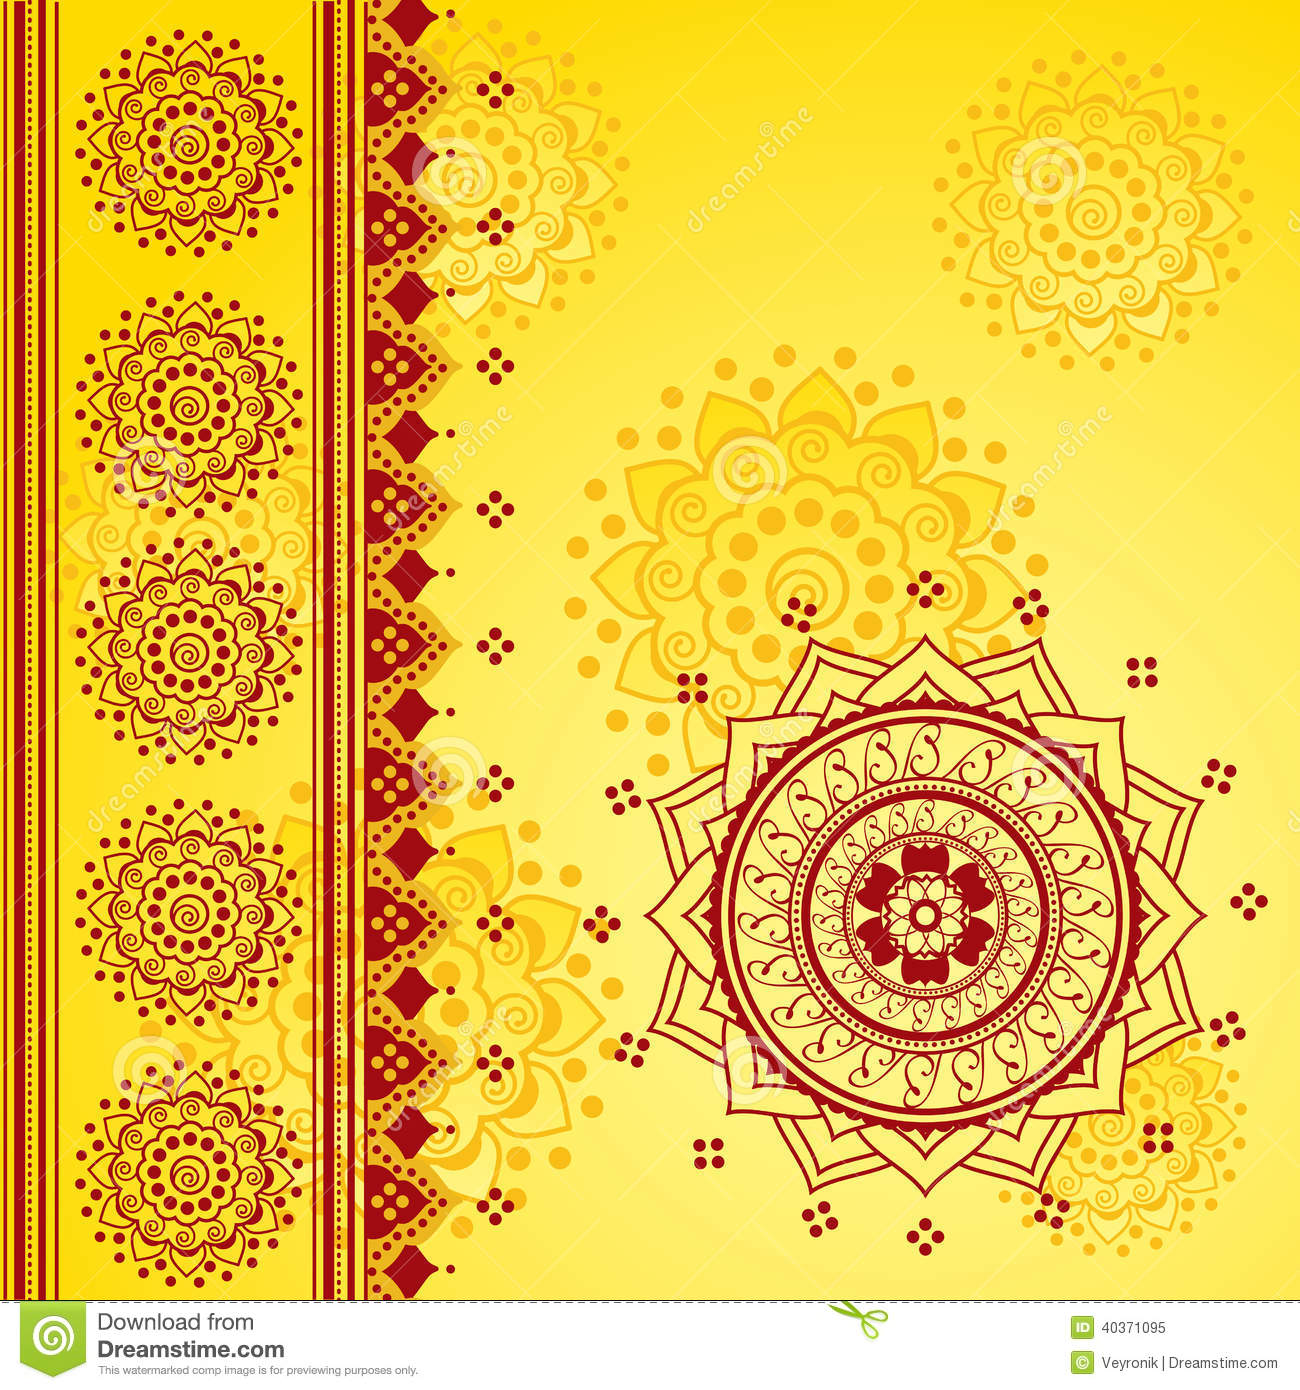 Yellow Indian background stock vector. Illustration of arabic - 40371095